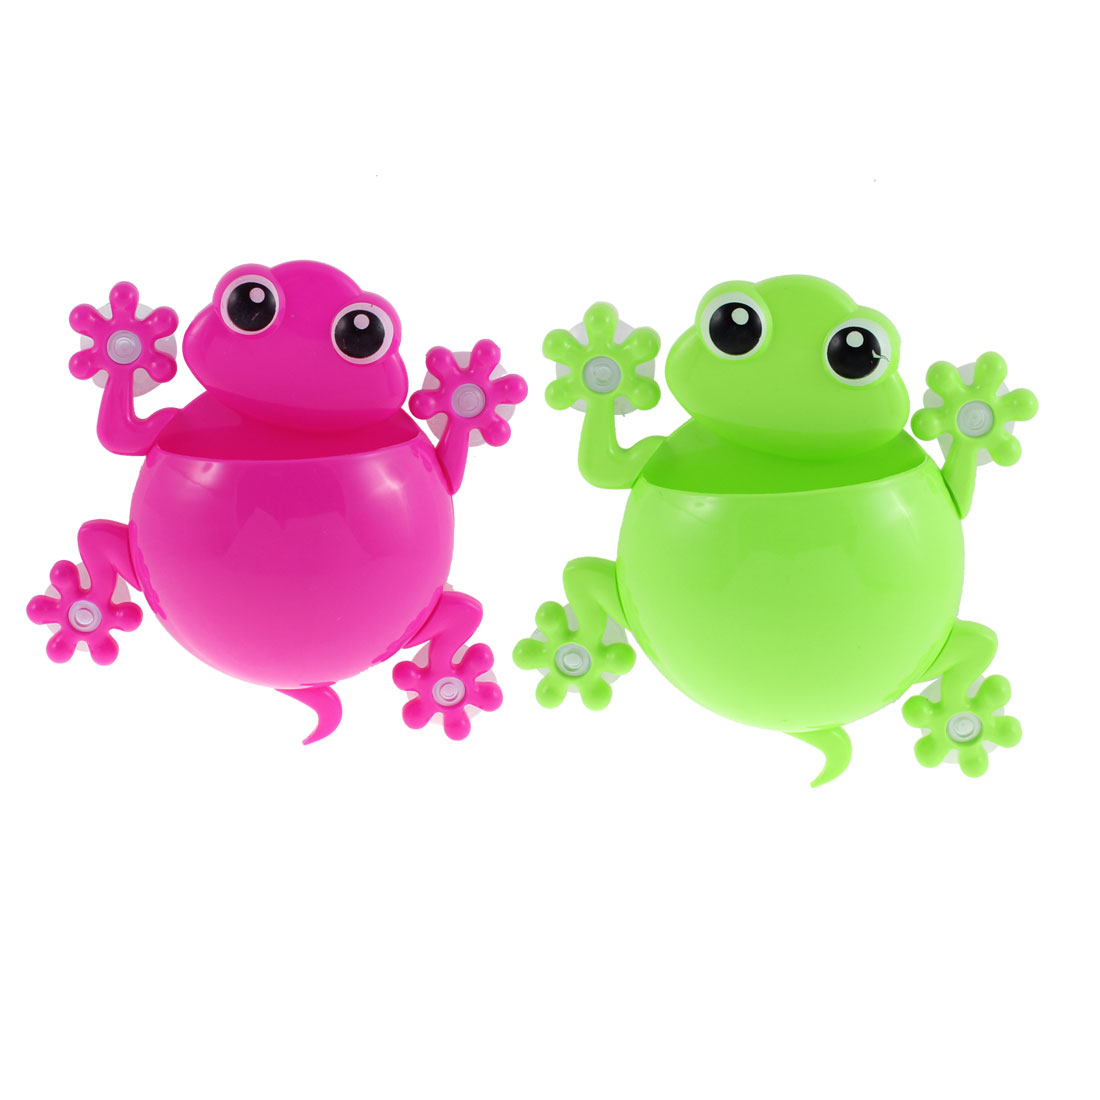 Plastic Frog Design Toothbrush Toothpaste Holder Green Fuchsia 2pcs